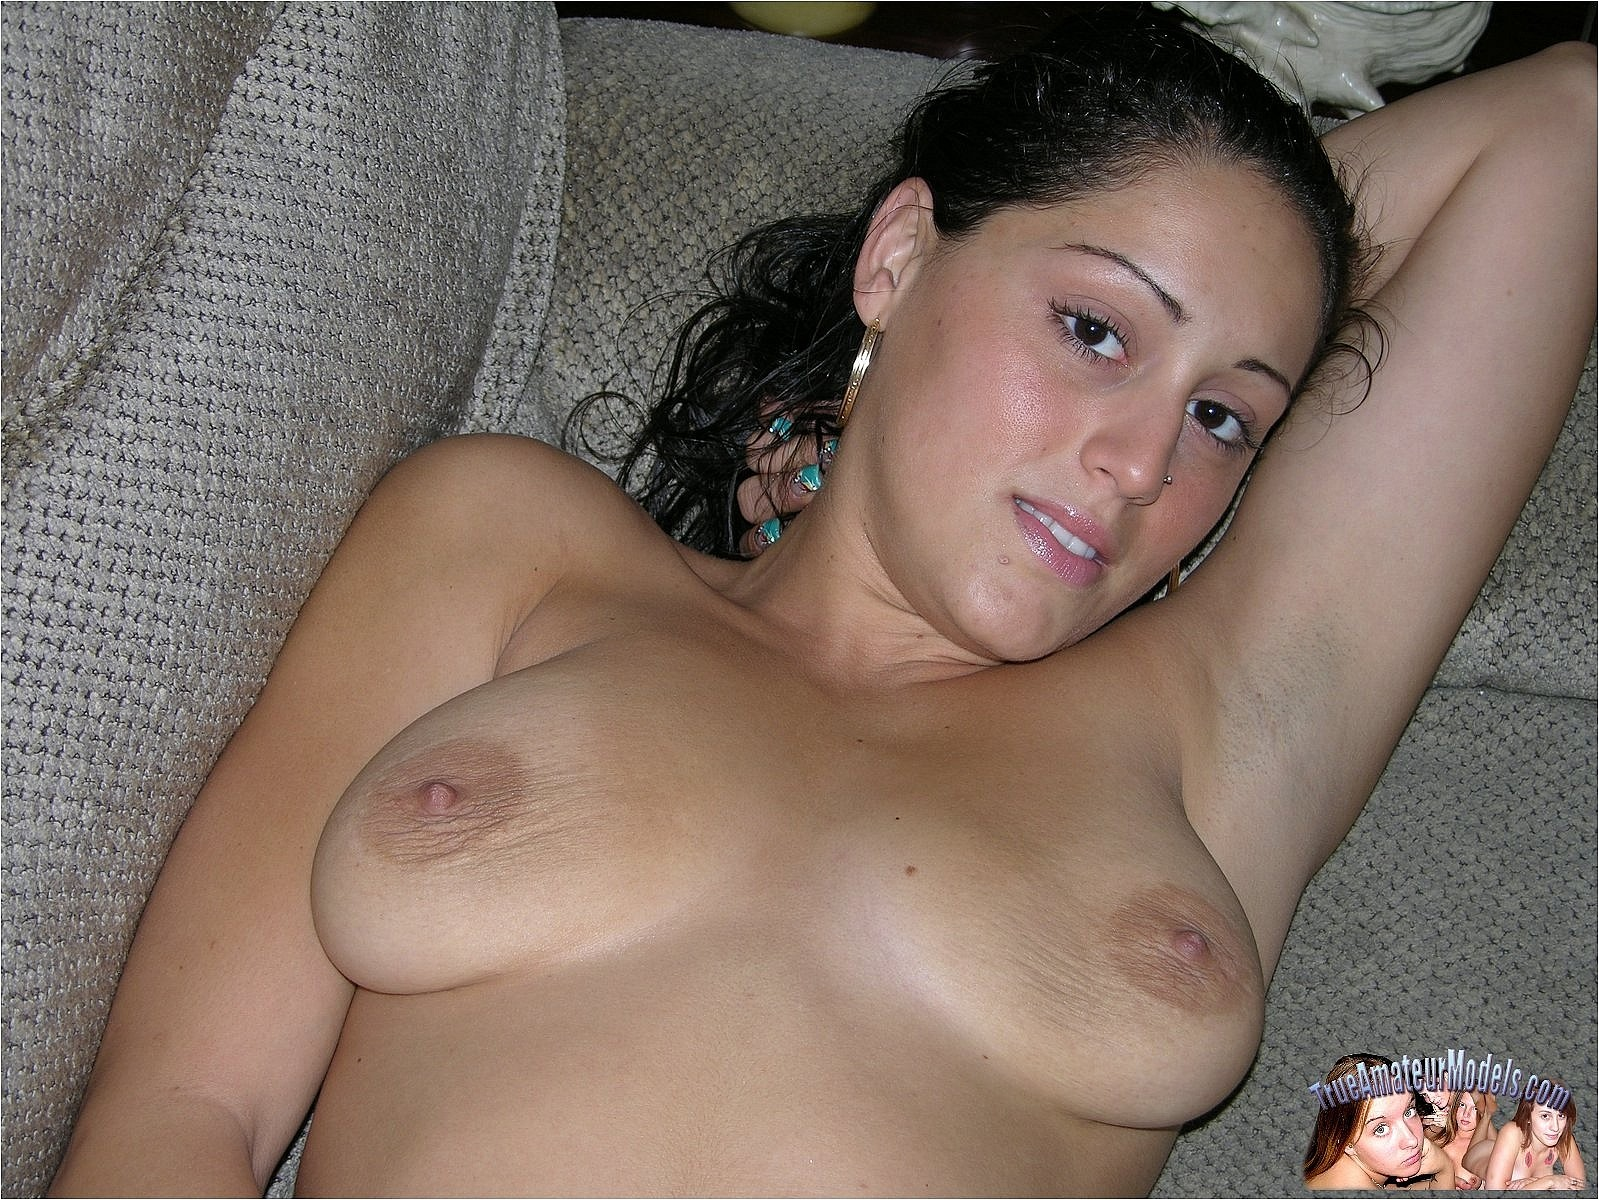 Saggy Tits And Shaved Snatch  Amateurpornphotos-7568